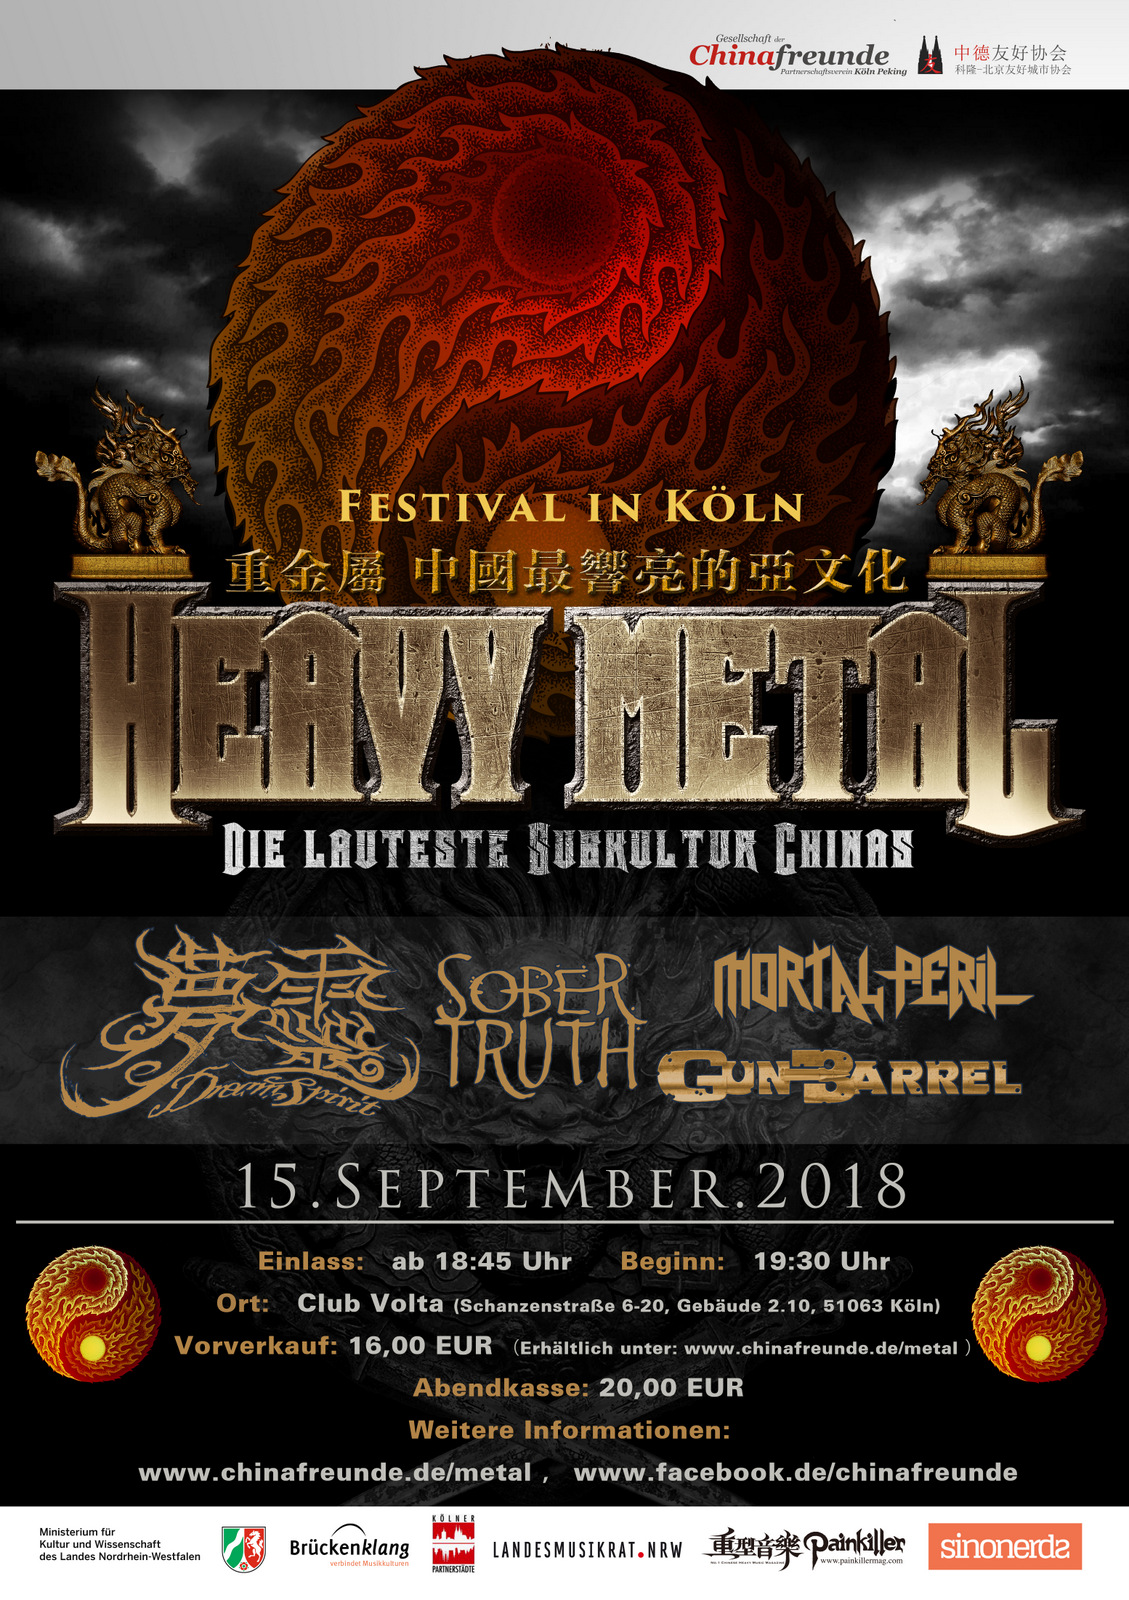 Heavy Metal - Die lauteste Subkultur Chinas in Köln 2018